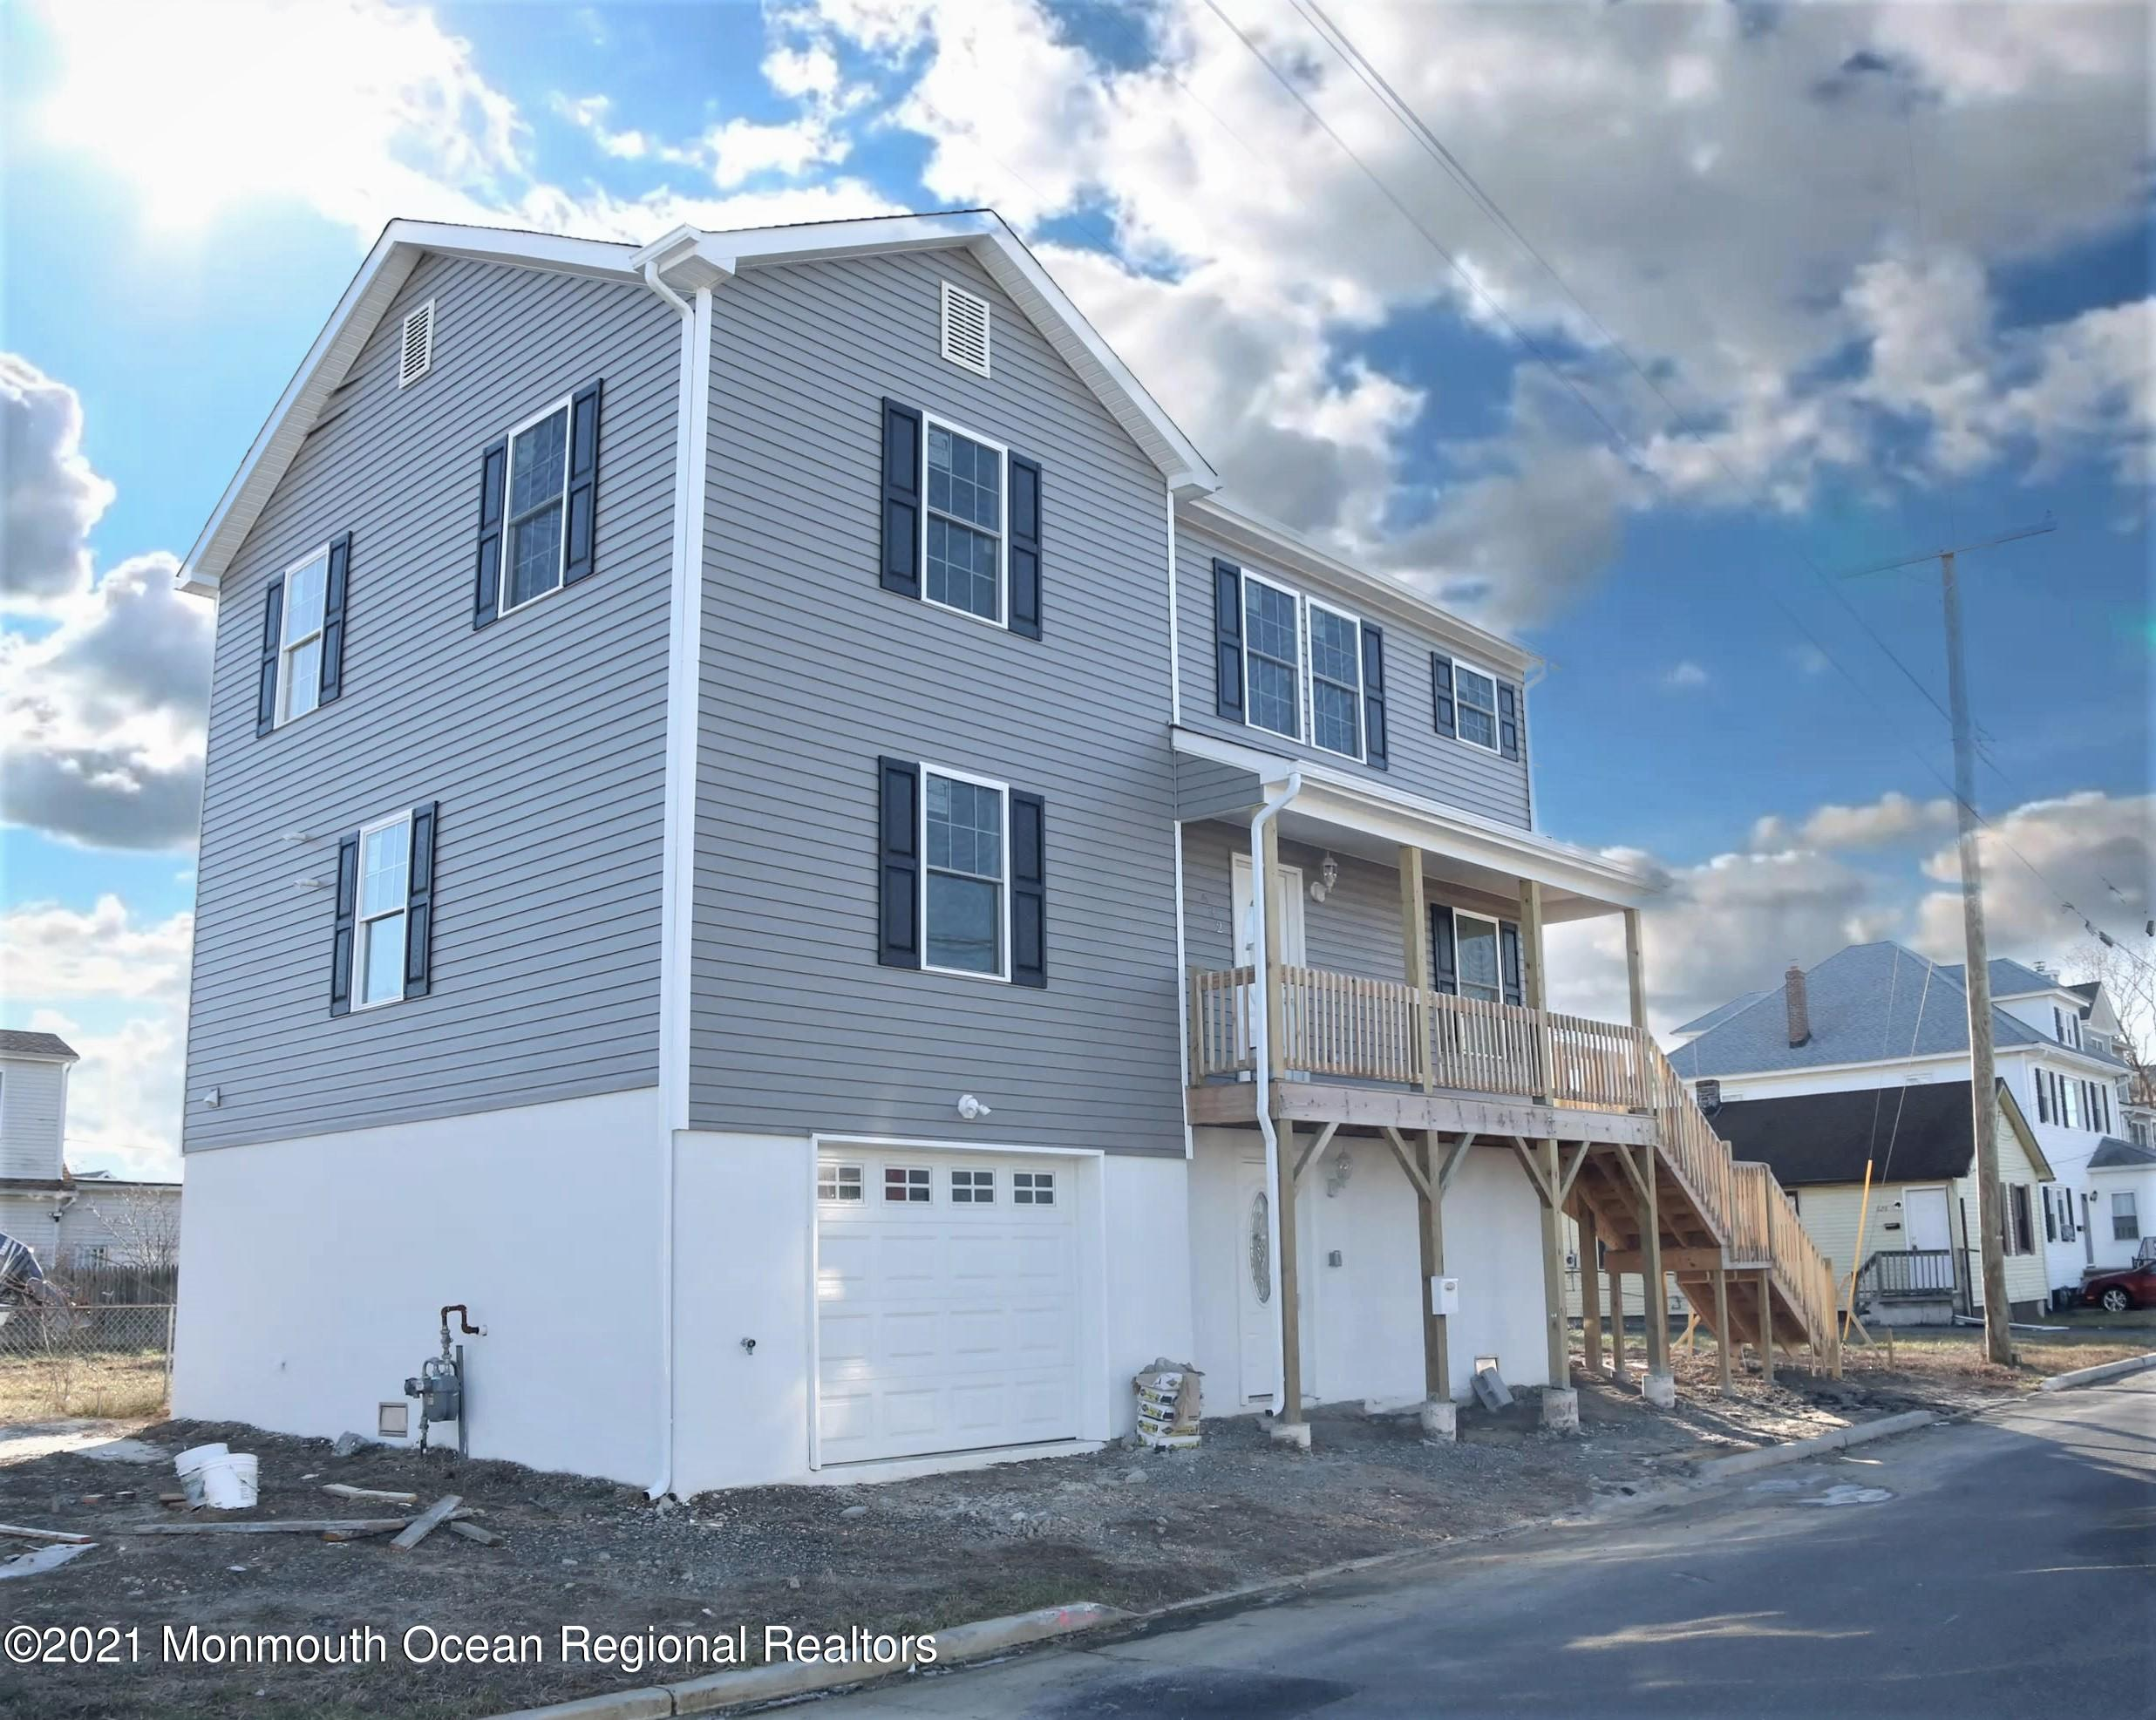 632 Bayview Avenue, Union Beach, New Jersey 07735, 4 Bedrooms Bedrooms, ,3 BathroomsBathrooms,Single Family,For Sale,632 Bayview Avenue,2,22100819